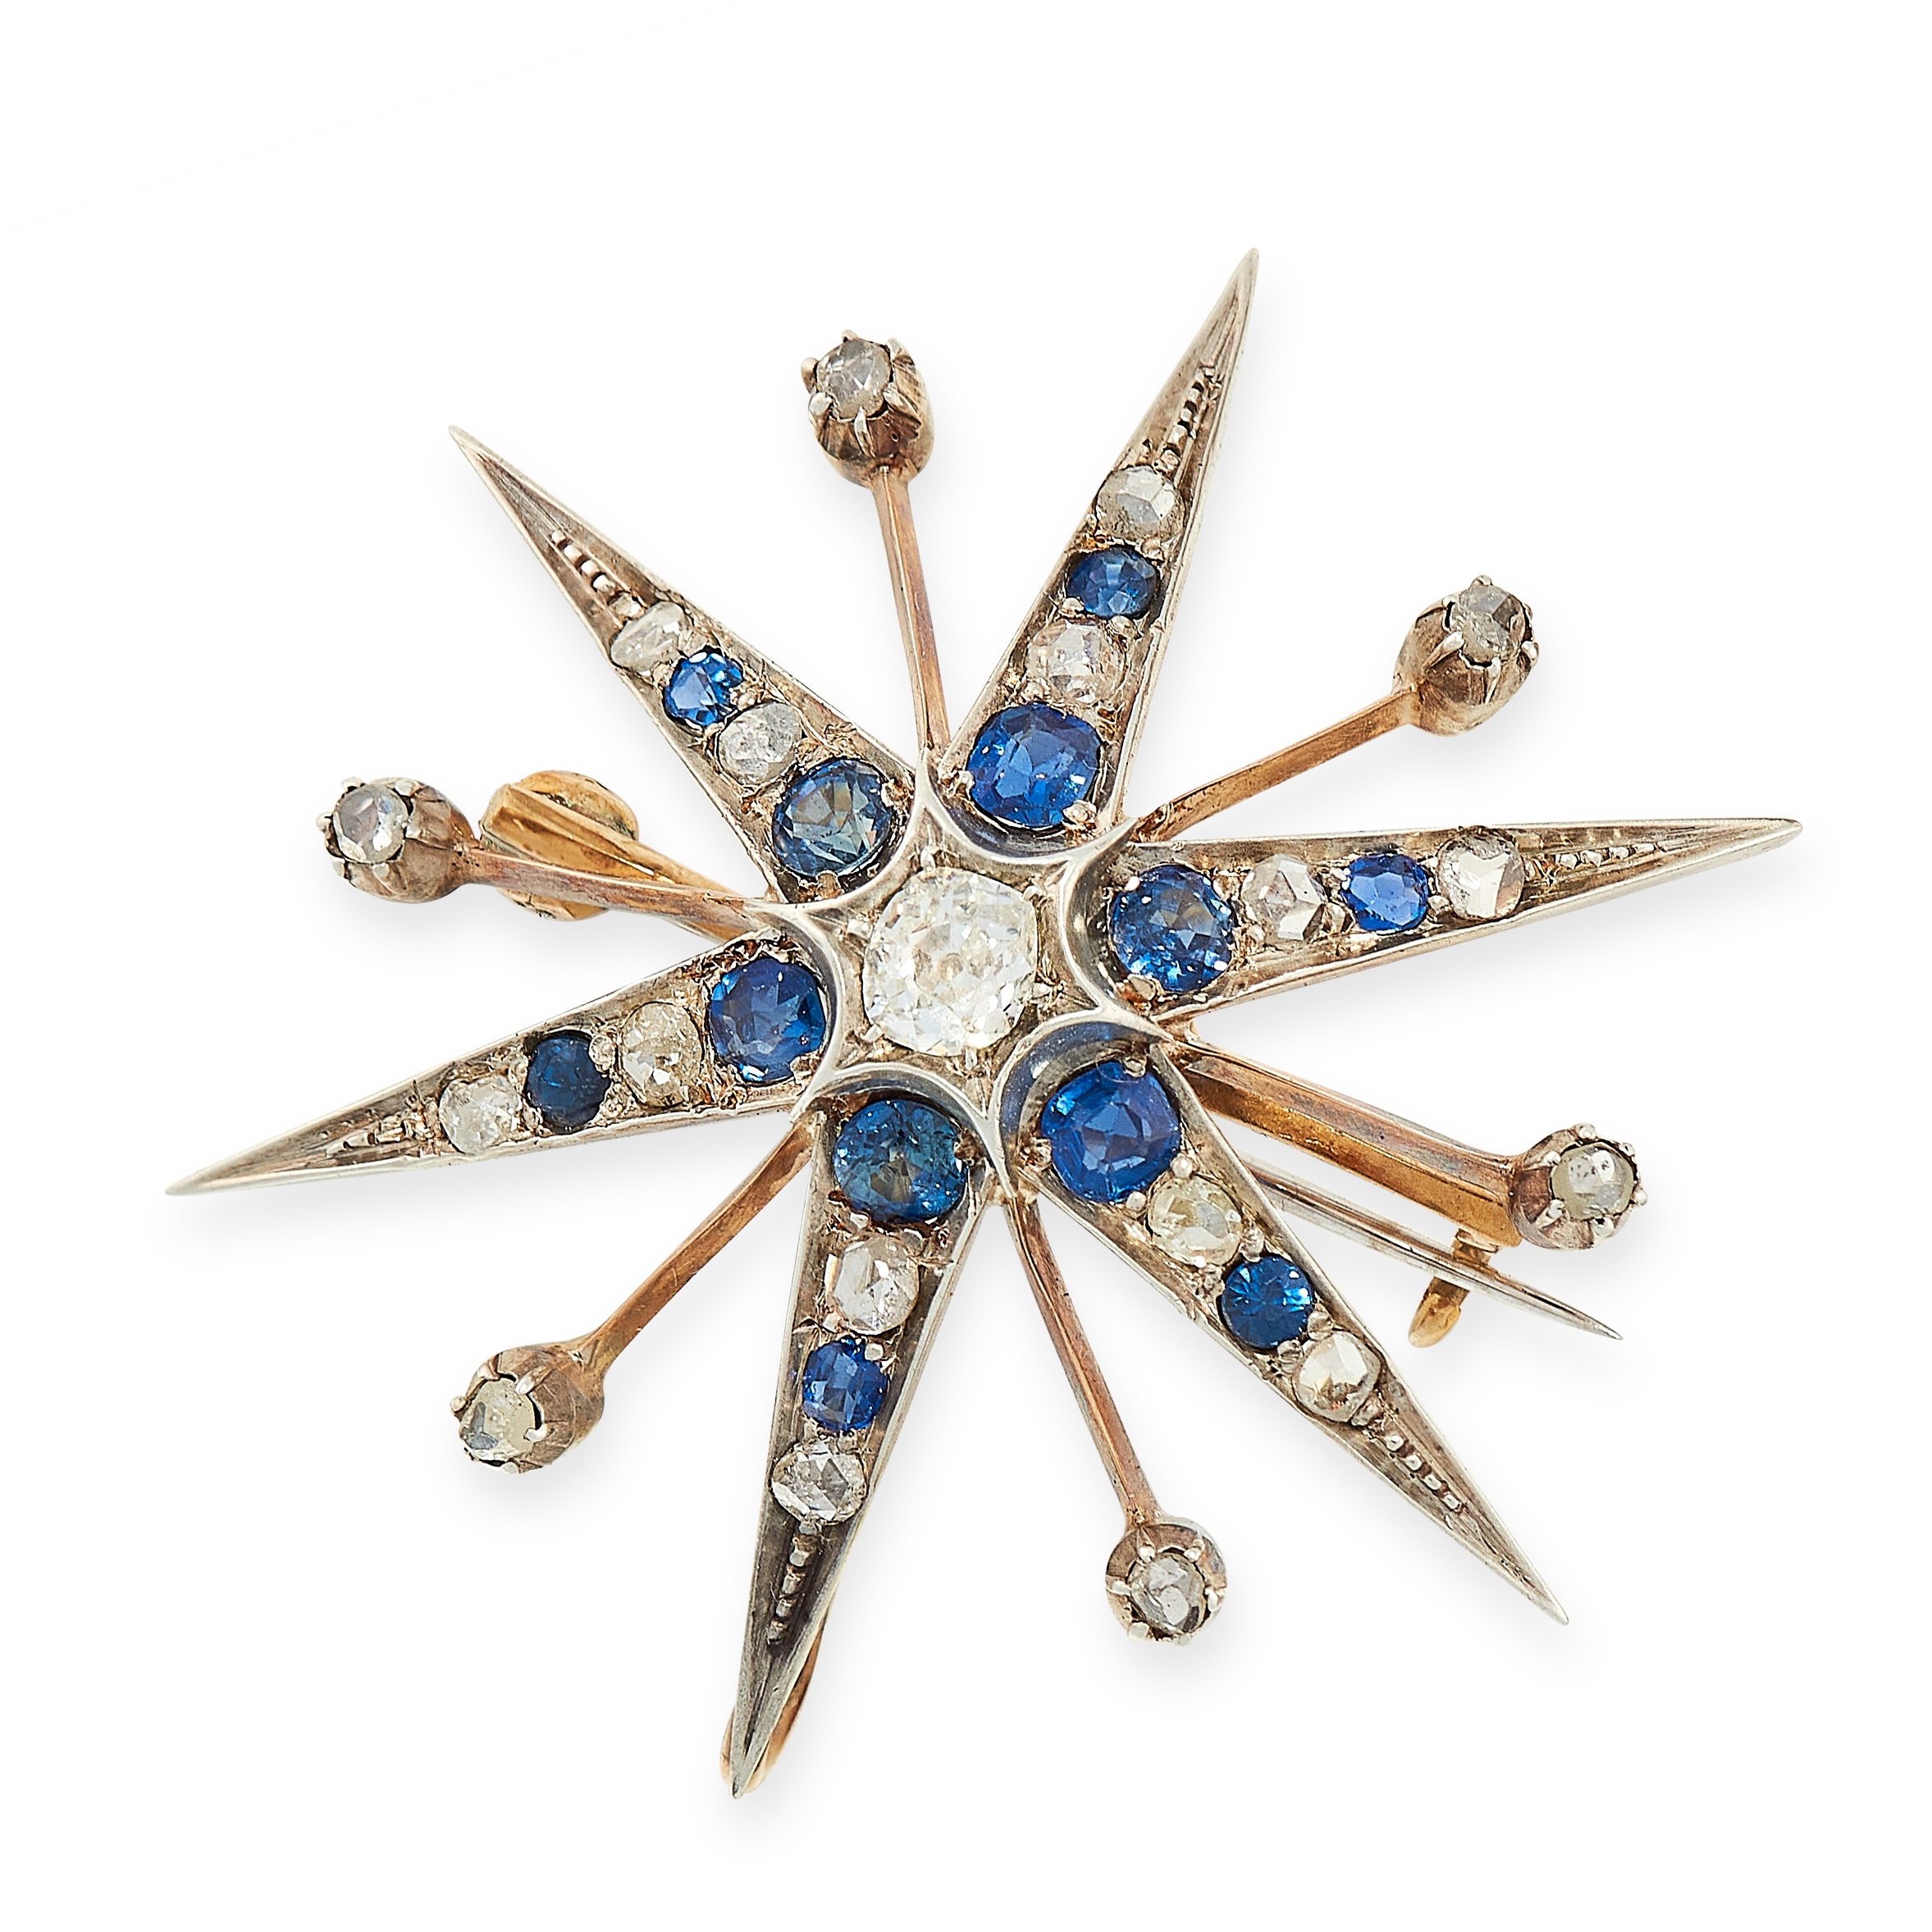 ANTIQUE SAPPHIRE AND DIAMOND STAR BROOCH / PENDANT, 19TH CENTURY in yellow gold and silver, designed